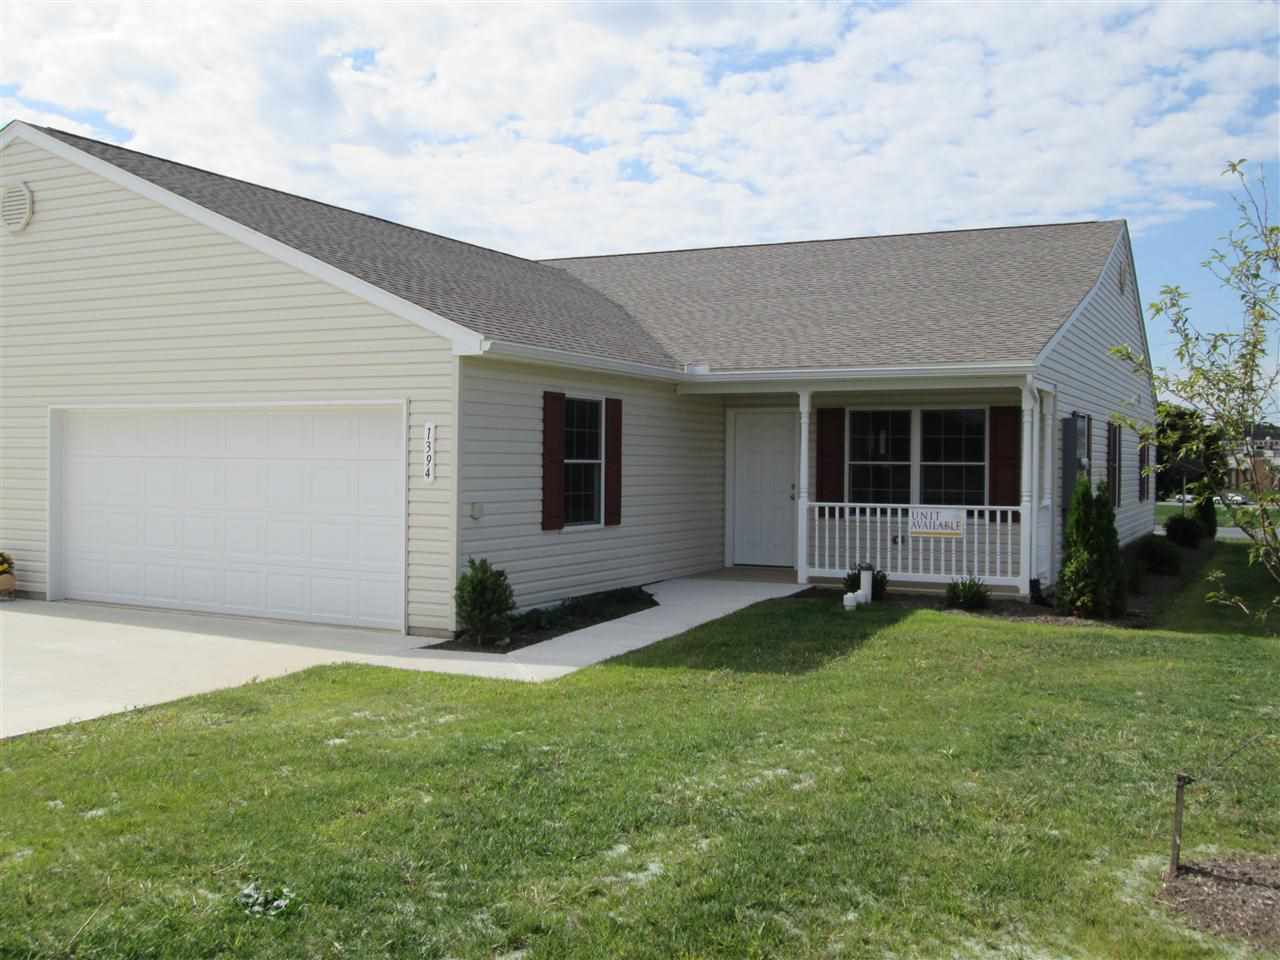 1394 Pleasant View Dr, Spring Grove, PA 17362